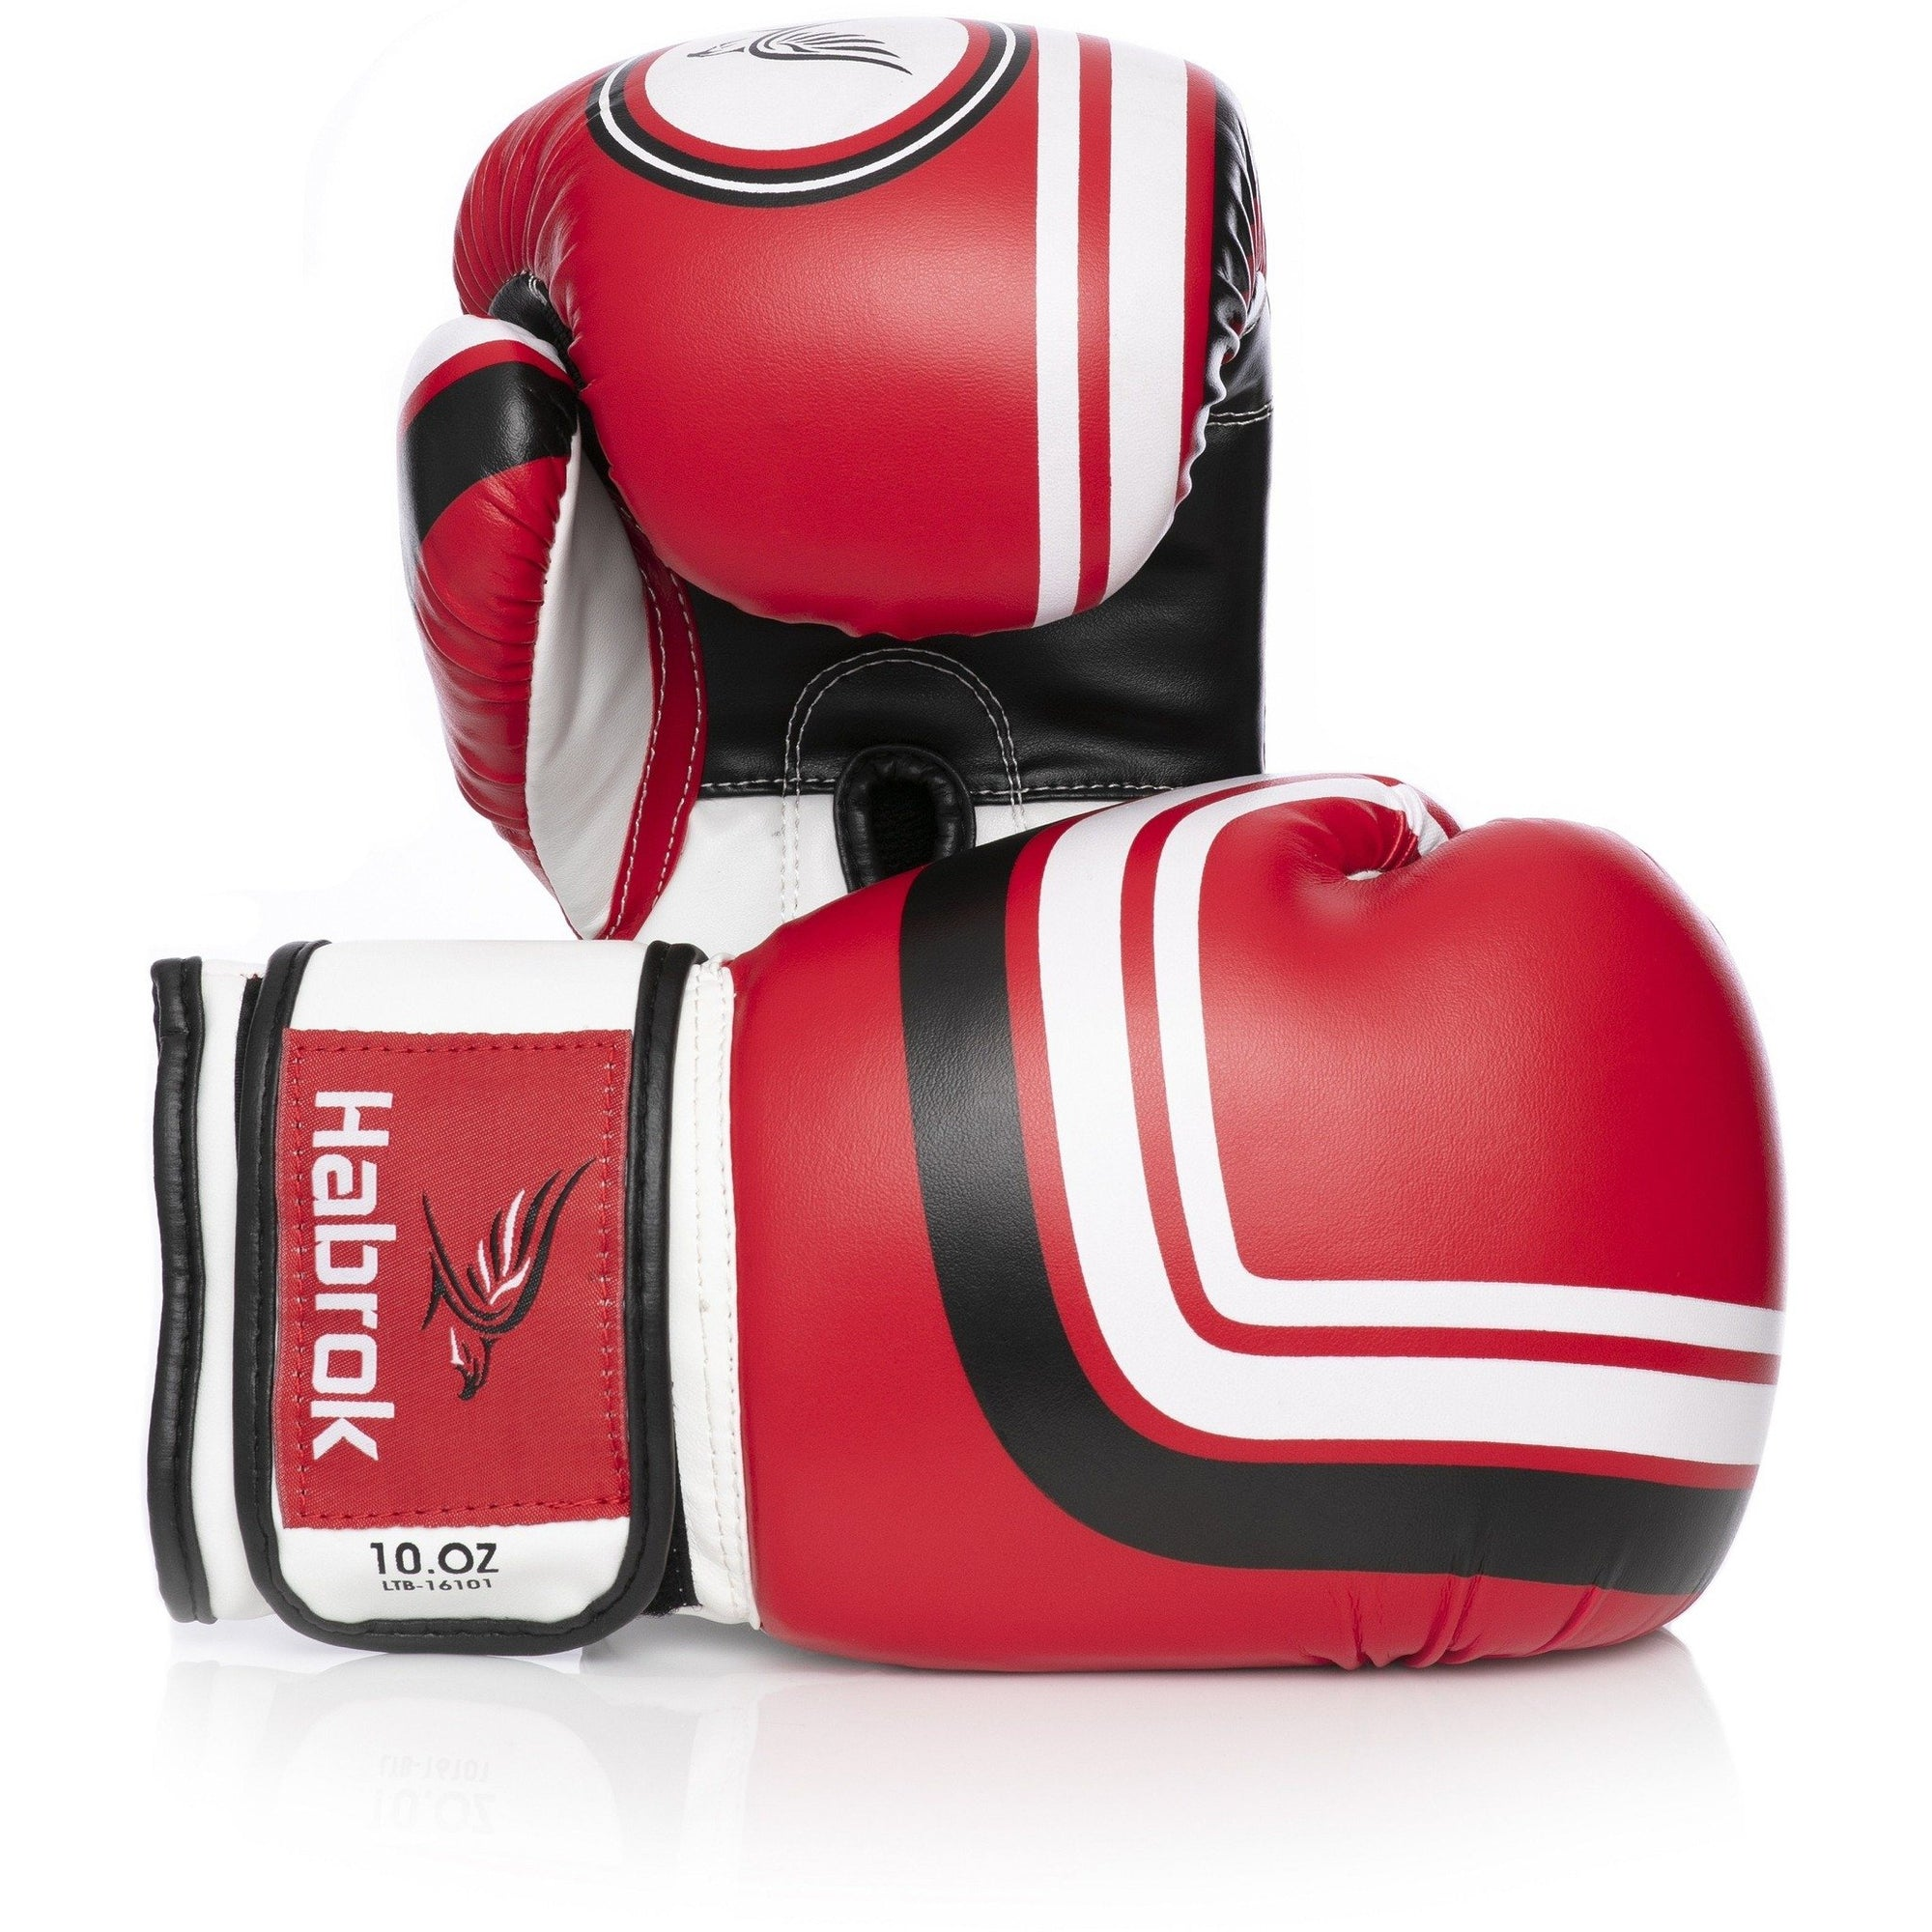 Habrok Pugnator 2.0 Boxing Gloves, Boxing Gloves - Habrok